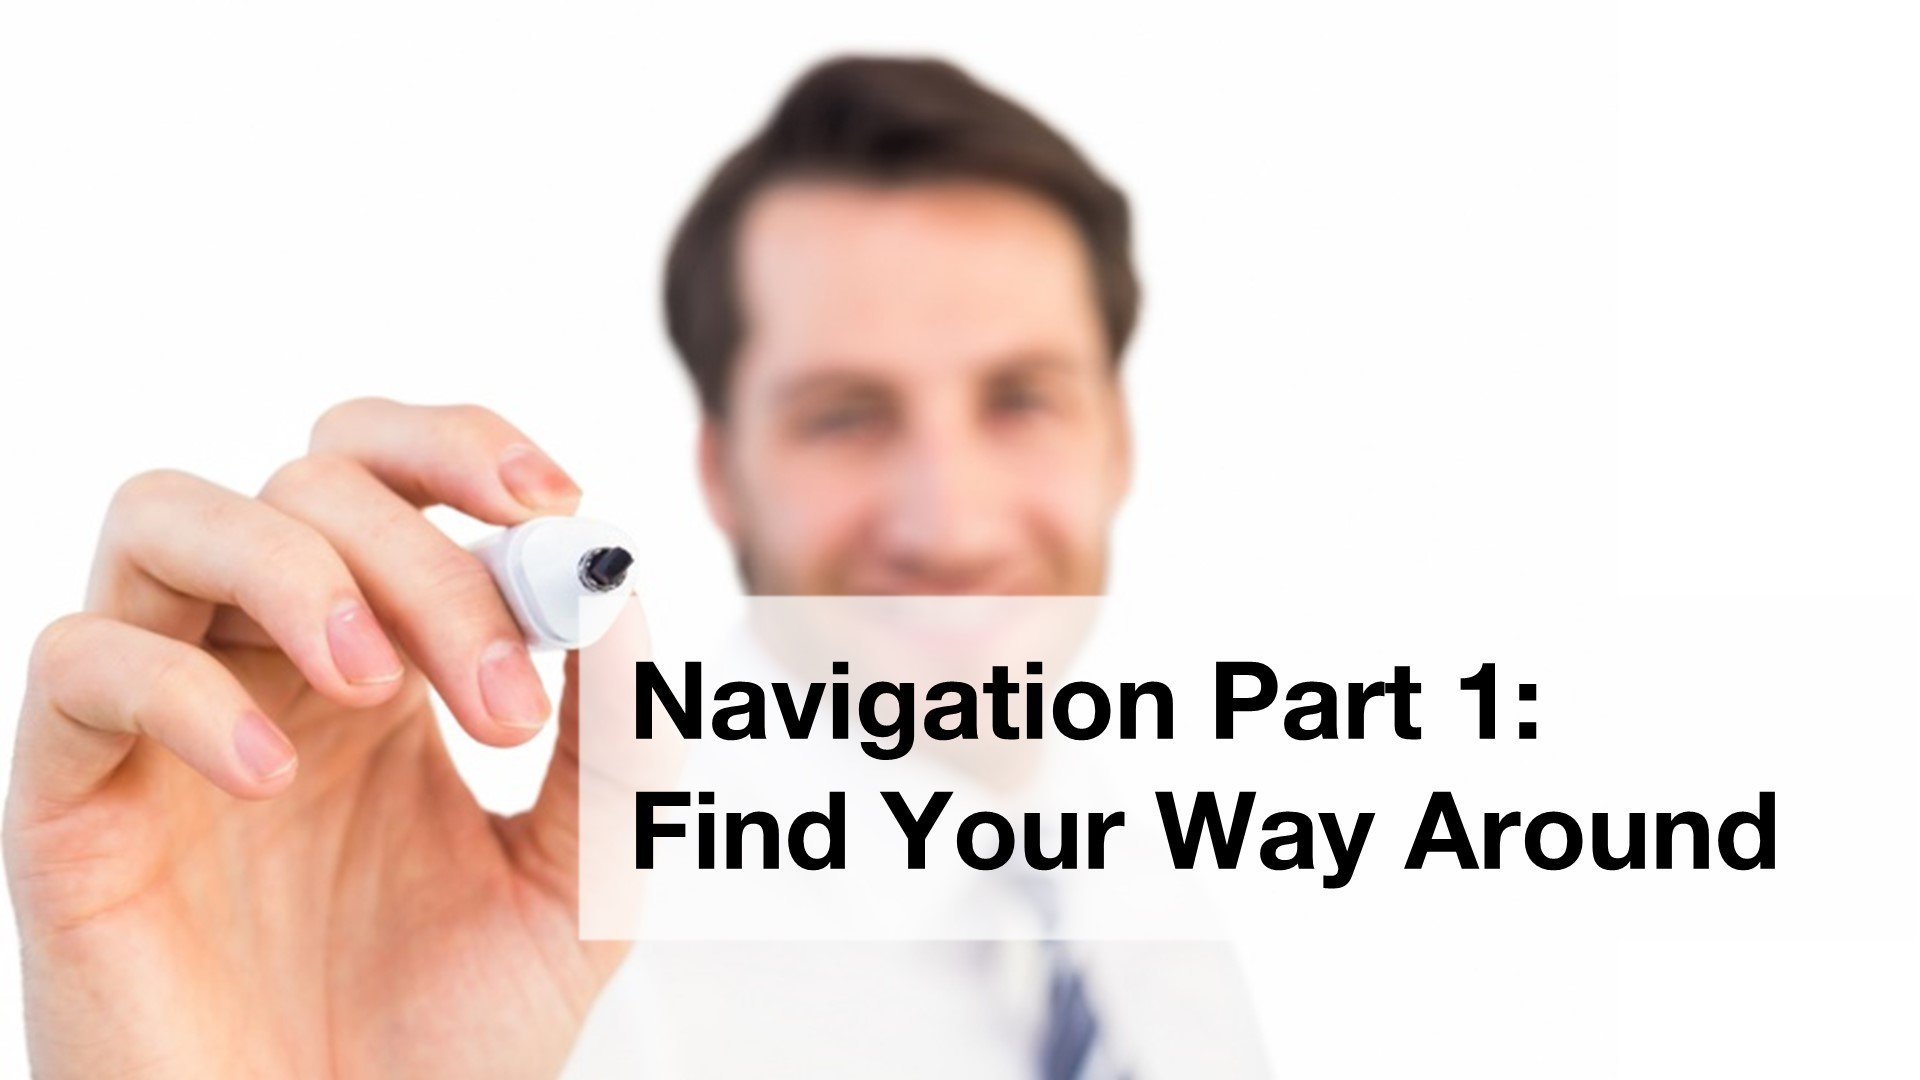 Navigation Part 1: Login and Finding Your Way Around